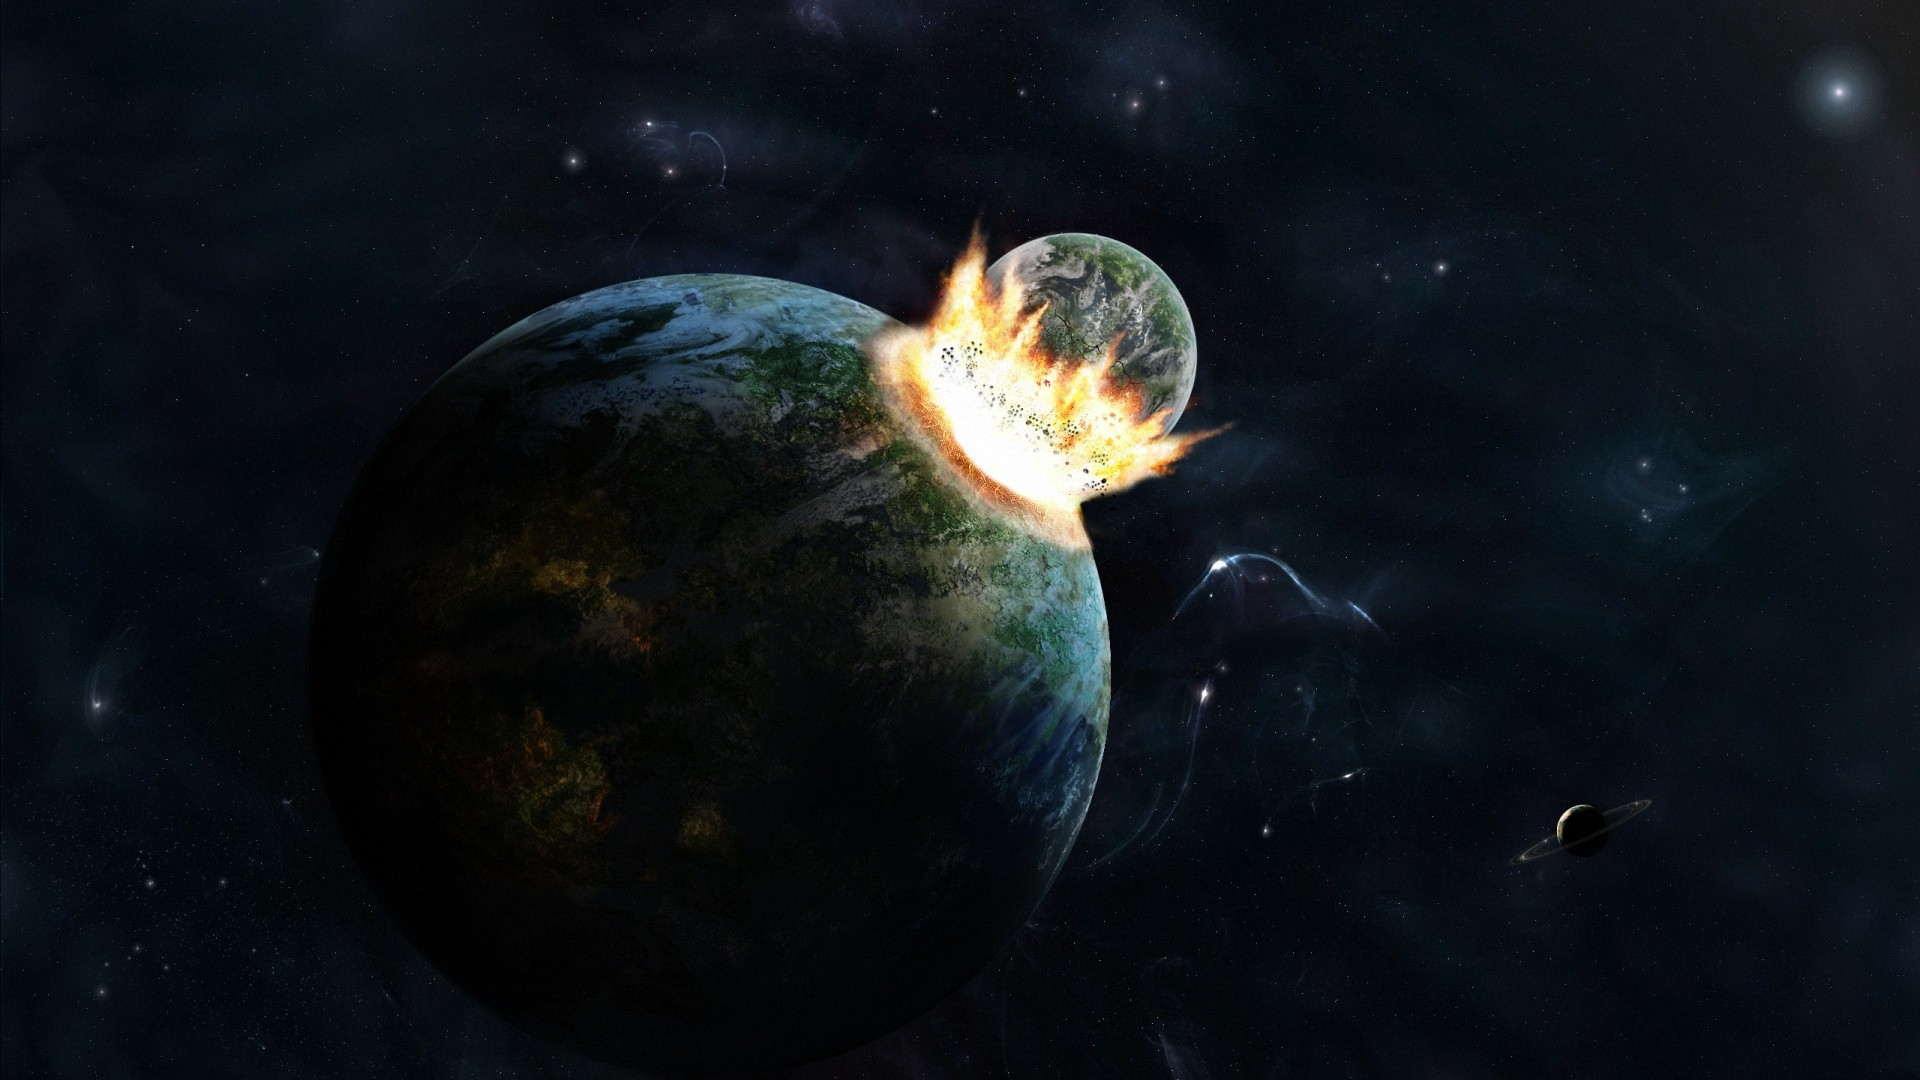 Space Universe Abstract Planets Earth Crashing Fantasy Wallpaper Space Wallpaper Better